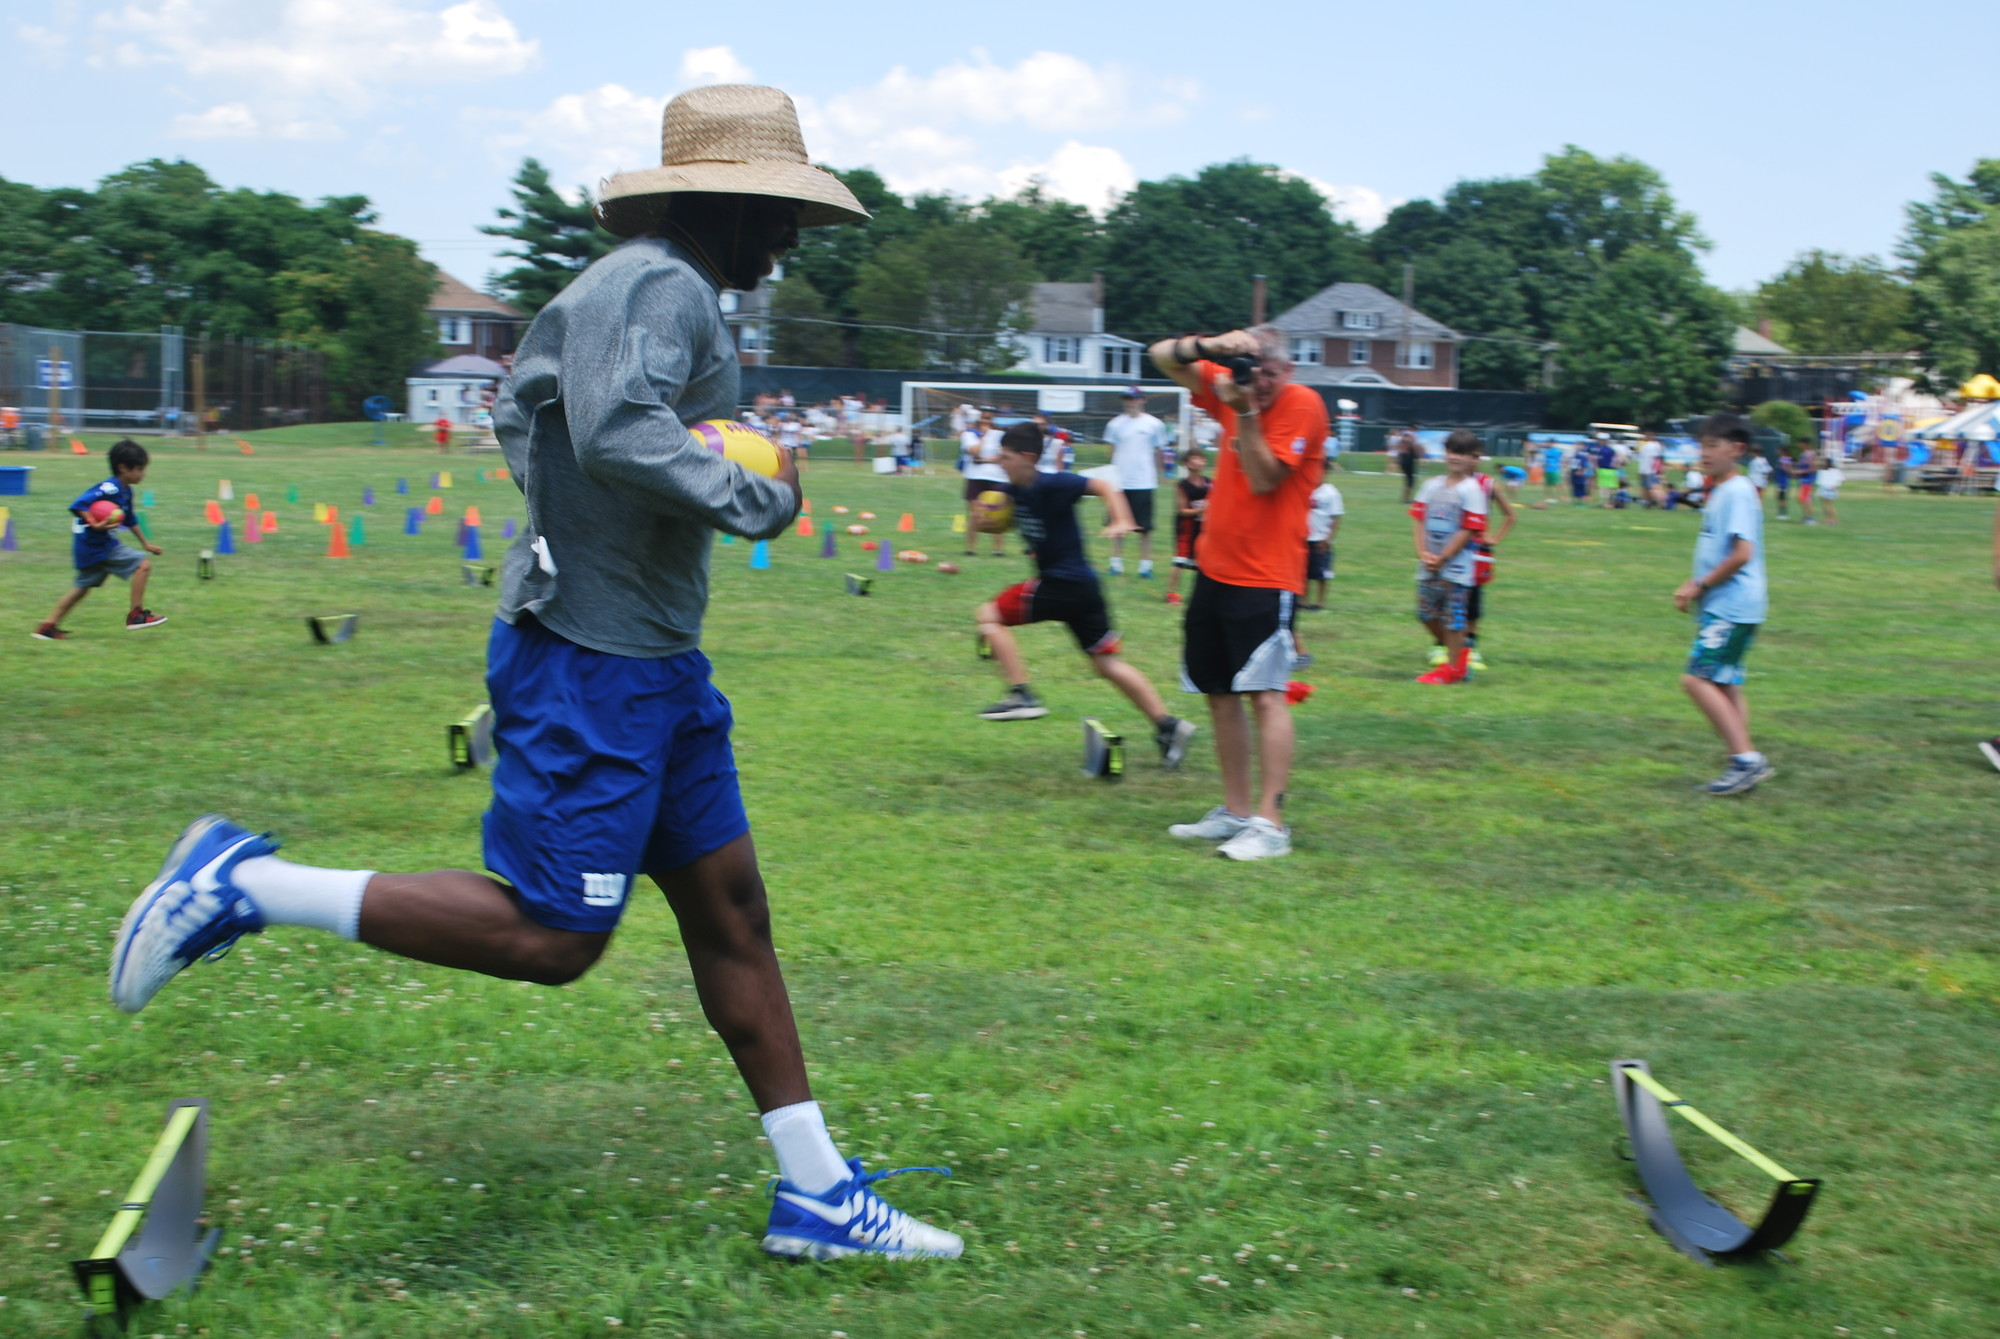 New York Giants cornerback Prince Amukamara showed LWA campers how an agility drill is done.